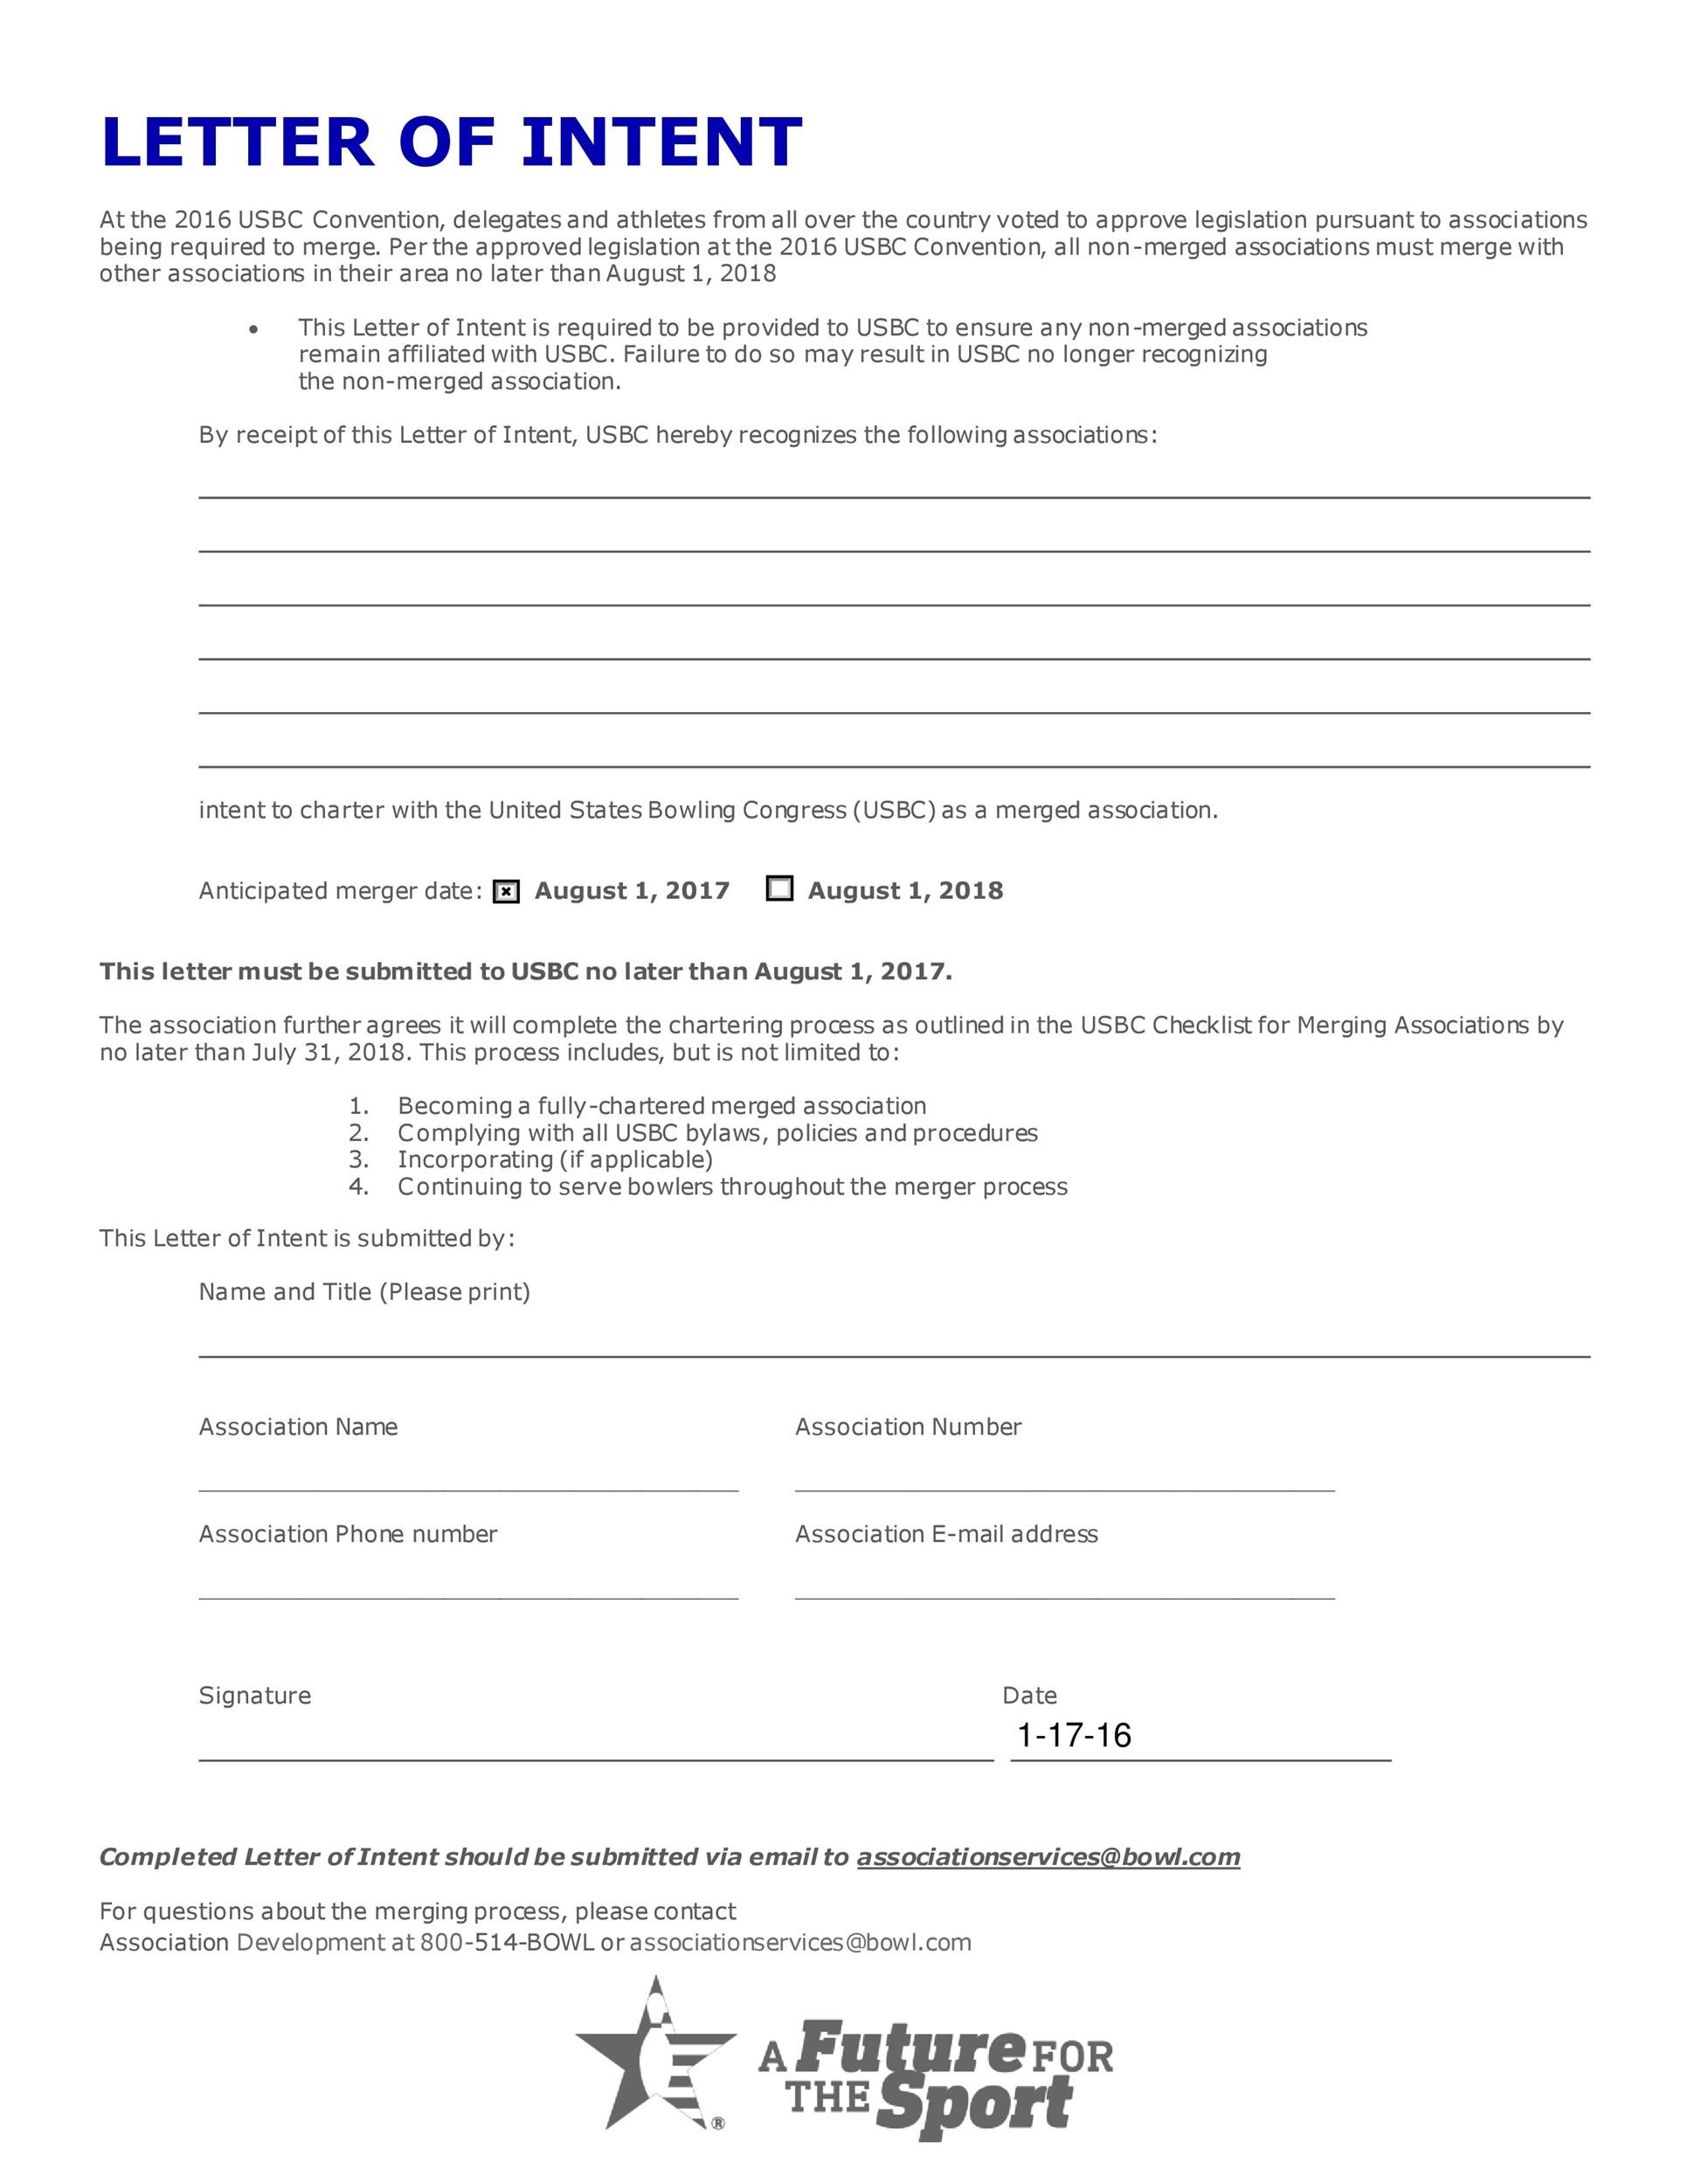 40+ Letter of Intent Templates & Samples [for Job, School, Business]